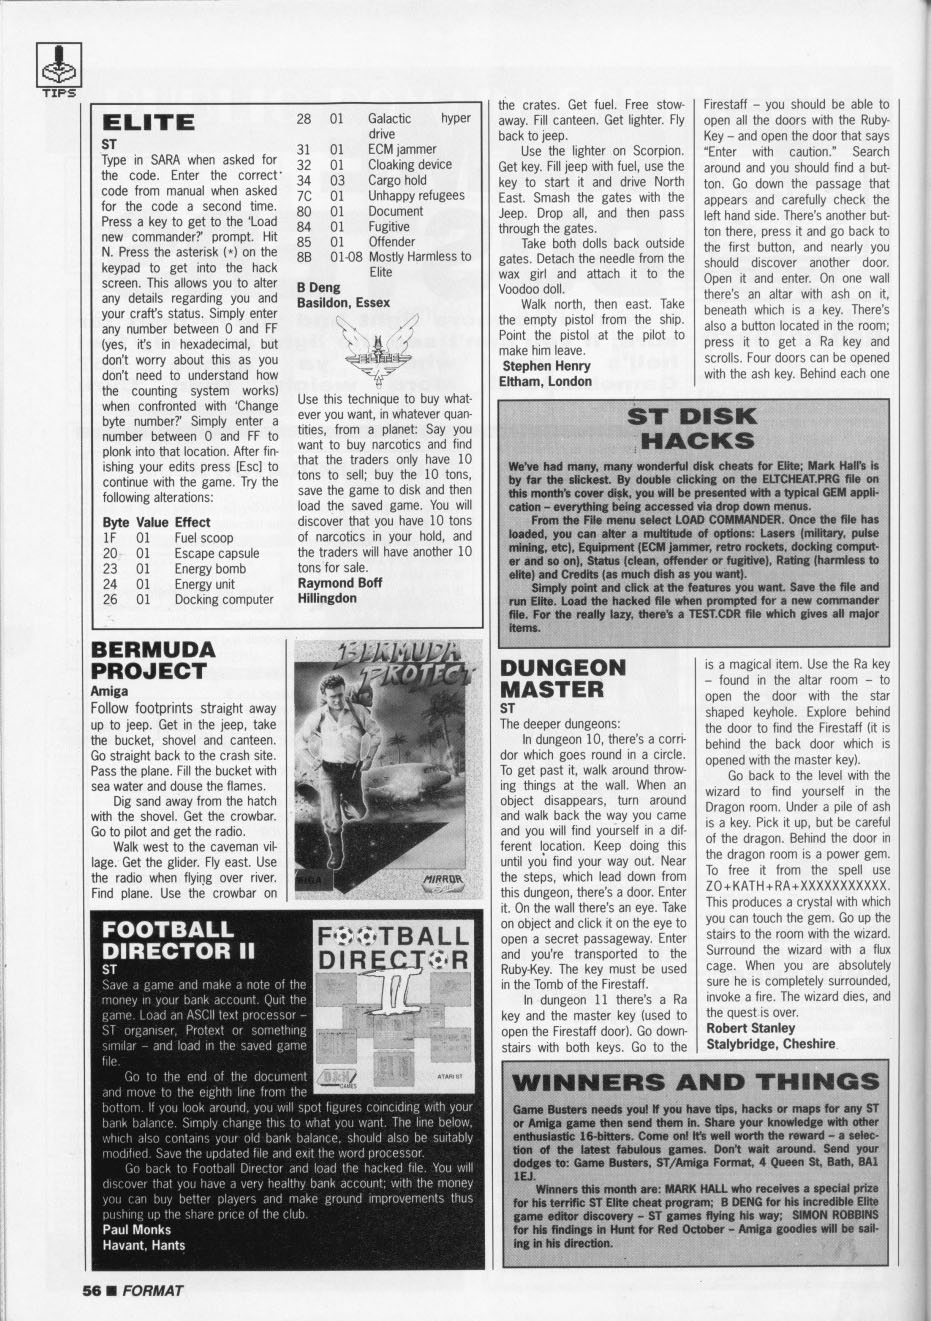 Dungeon Master Hints published in British magazine 'ST Amiga Format', Issue #7, January 1989, Page 56